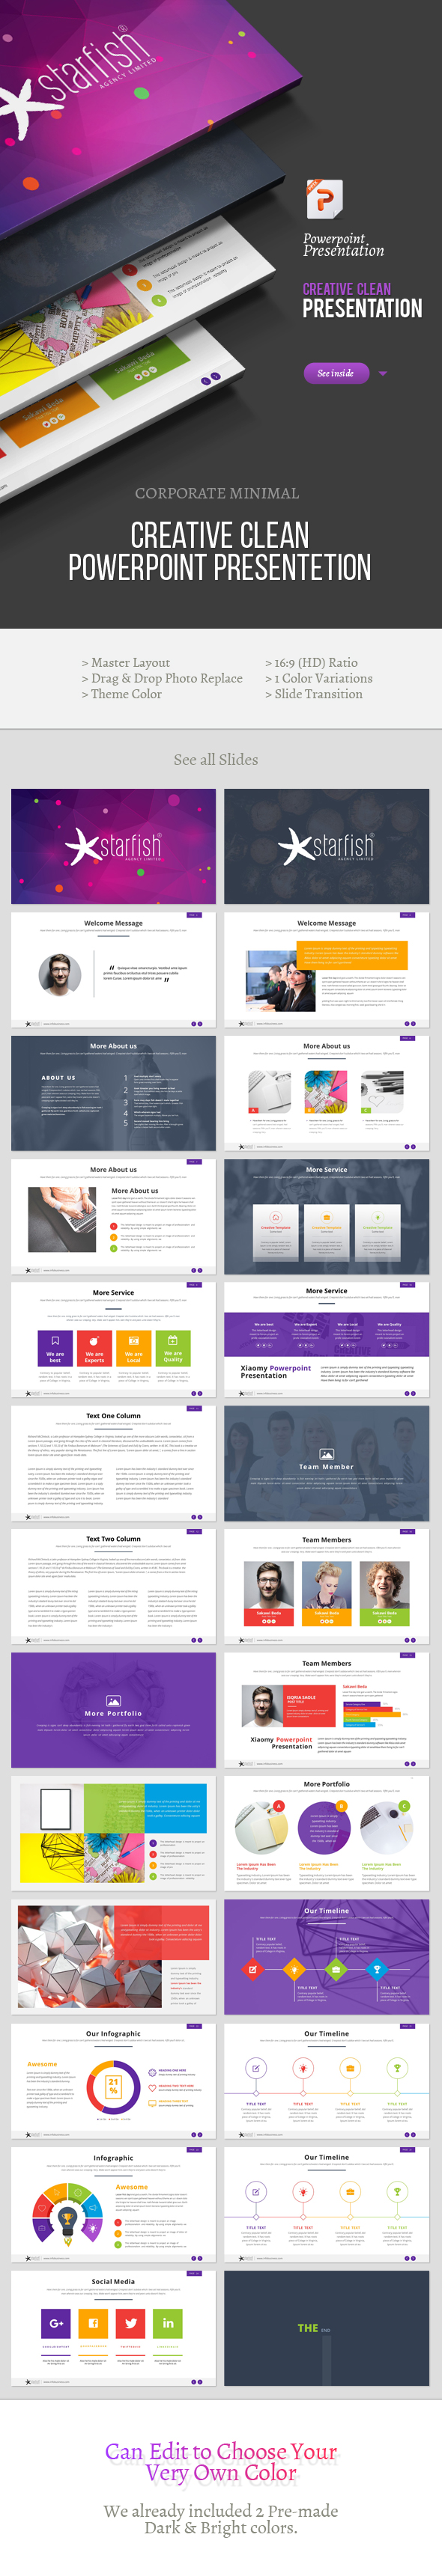 Starfish Creative Powerpoint Template - Business PowerPoint Templates